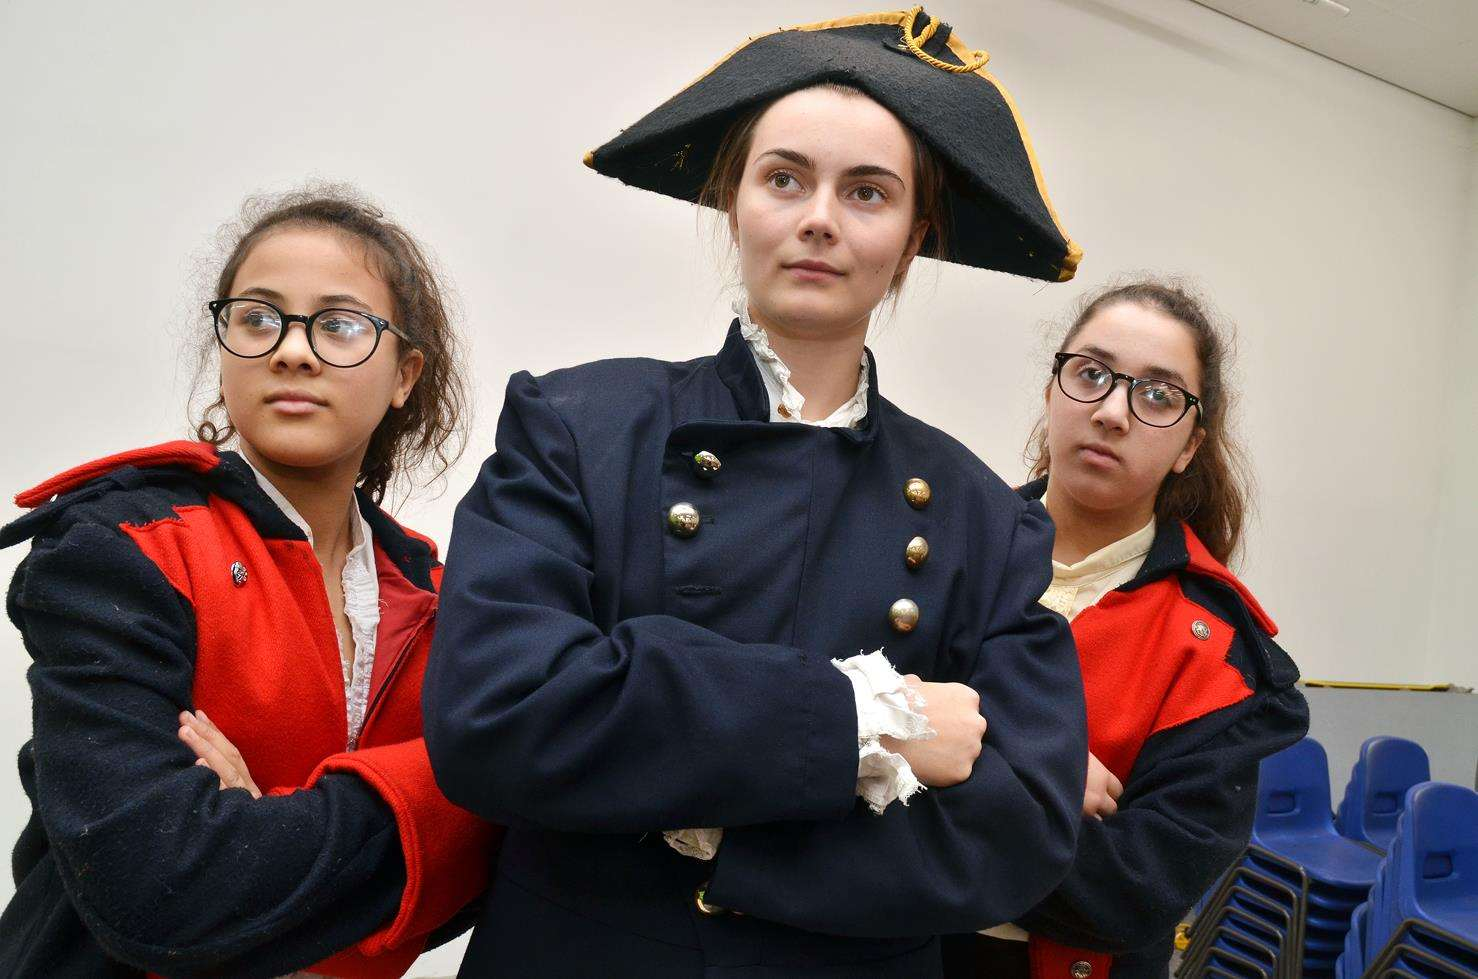 Libbi Wooding (centre, Javert) with Maddison and Jodie Benjamin (Constables).Photo by Tim Wilson.SG-051118-014TW